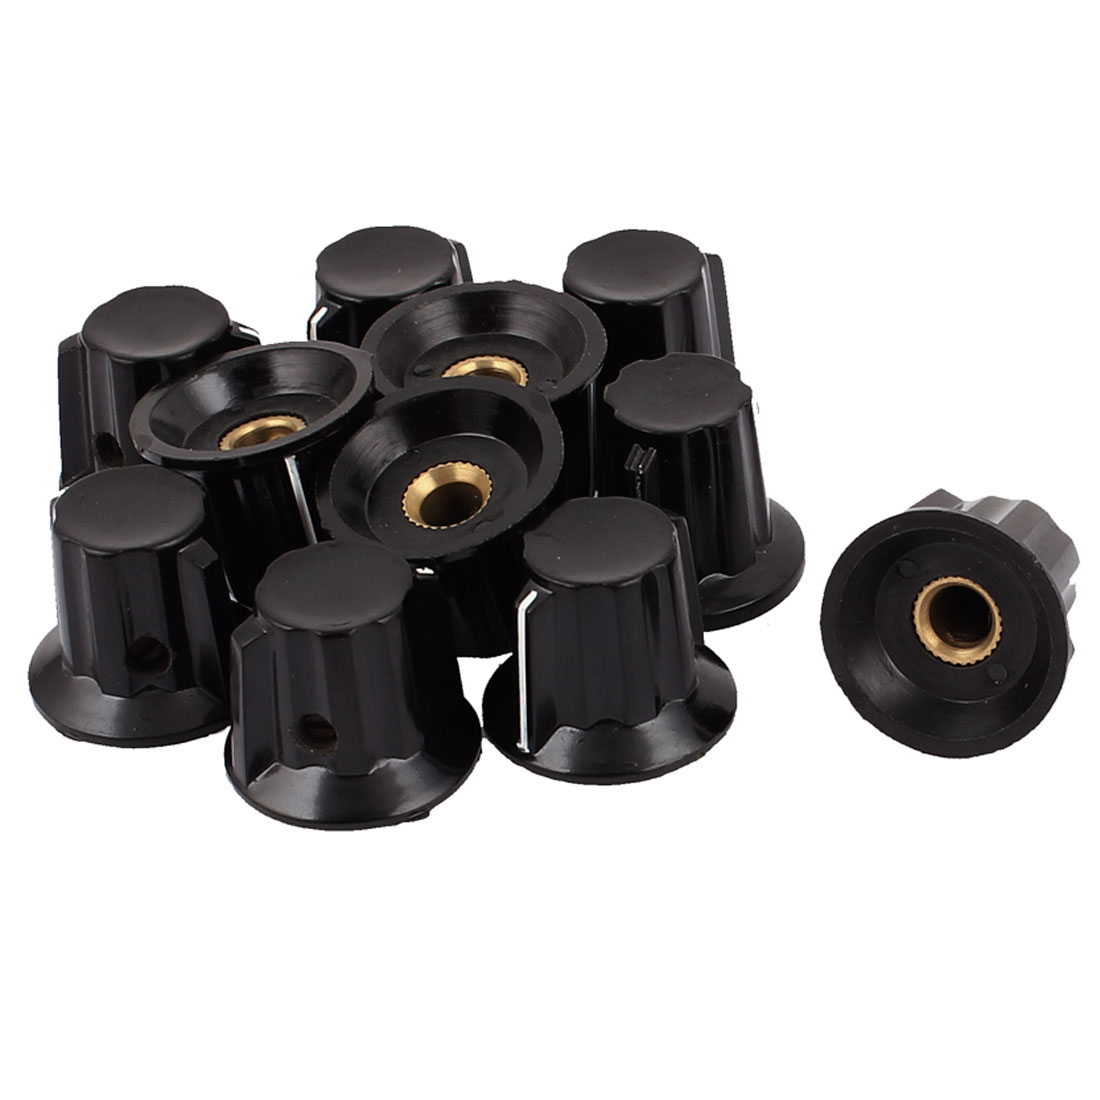 11 Pcs 25mm x 20mm Potentiometer Control Knob Mini Cap Knurled Button Black